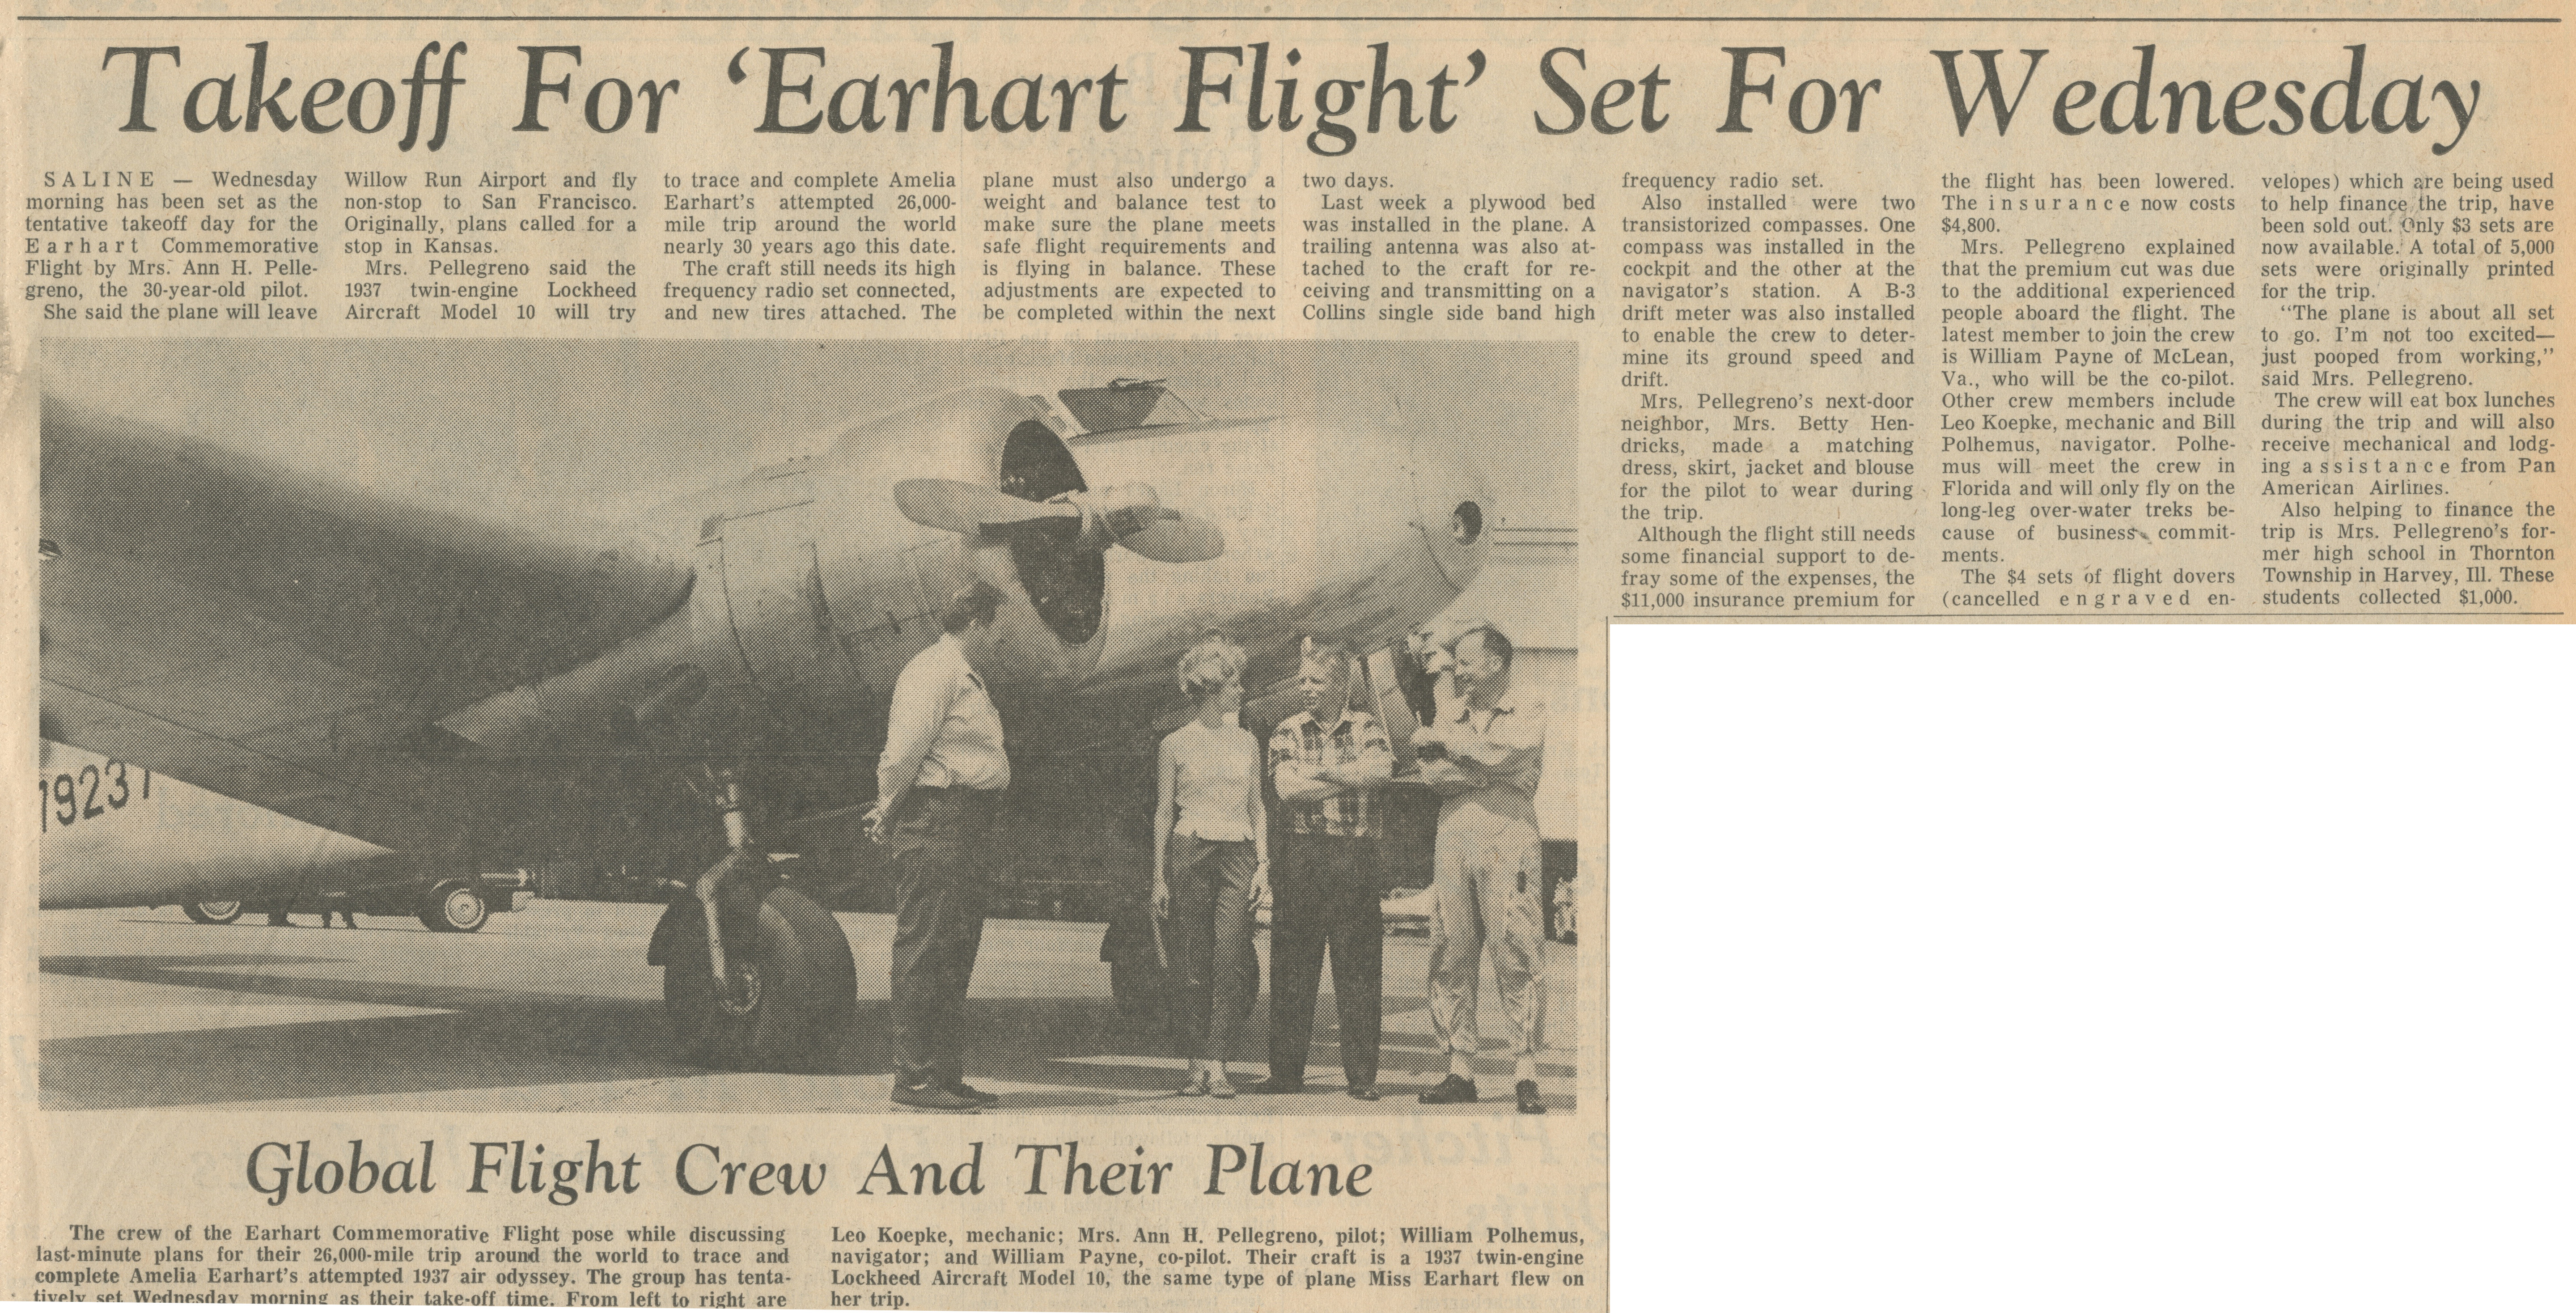 Takeoff For 'Earhart Flight' Set For Wednesday image